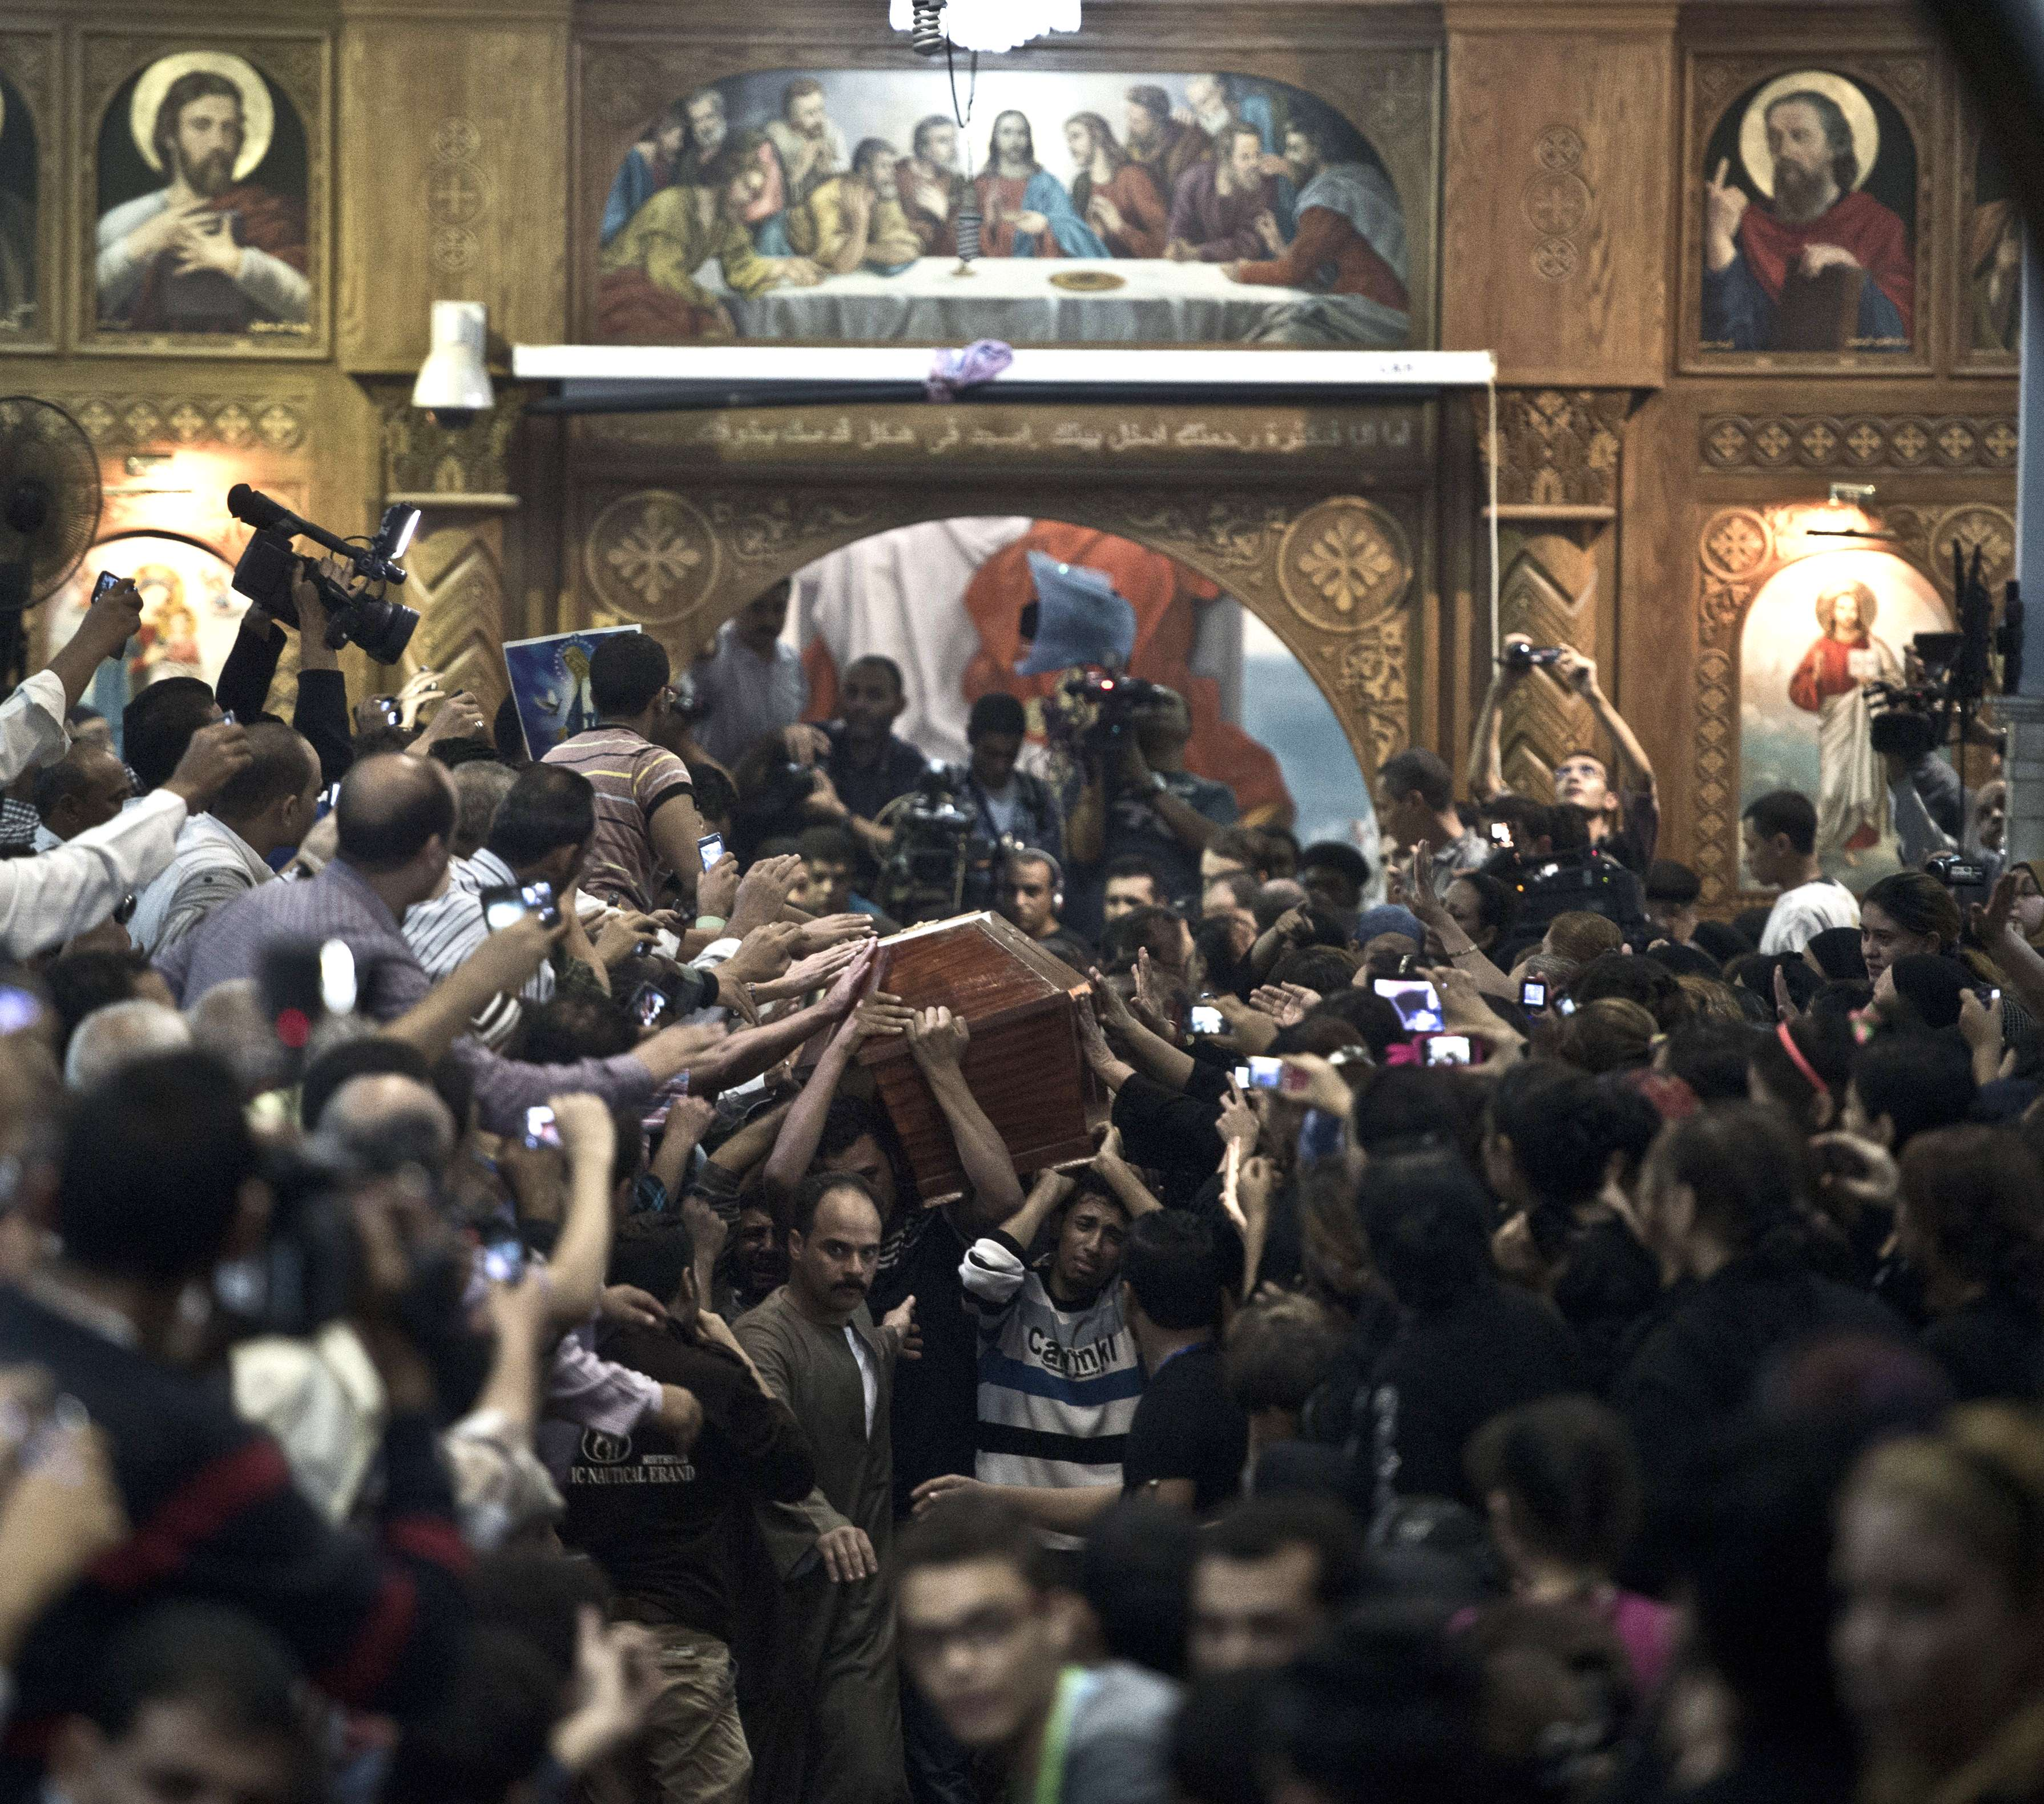 Egyptian Copts carry one of four coffins down the aisle of the Virgin Mary Coptic Christian church in Cairo's working class neighbourhood of Al-Warrak, on October 21, 2013, as thousands attend the funeral of the victims, gunned down as they attended a wedding the previous evening at the same church.  ( AFP PHOTO / KHALED DESOUKI)